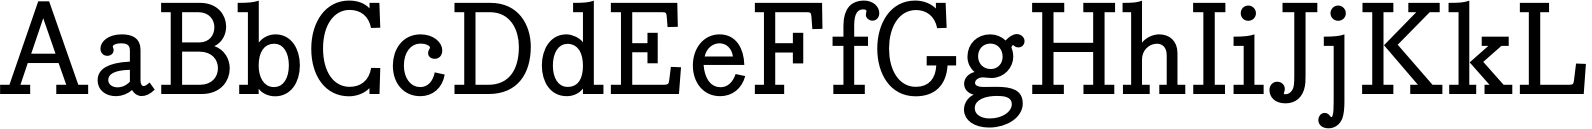 Bodoni Egyptian Pro Medium Font